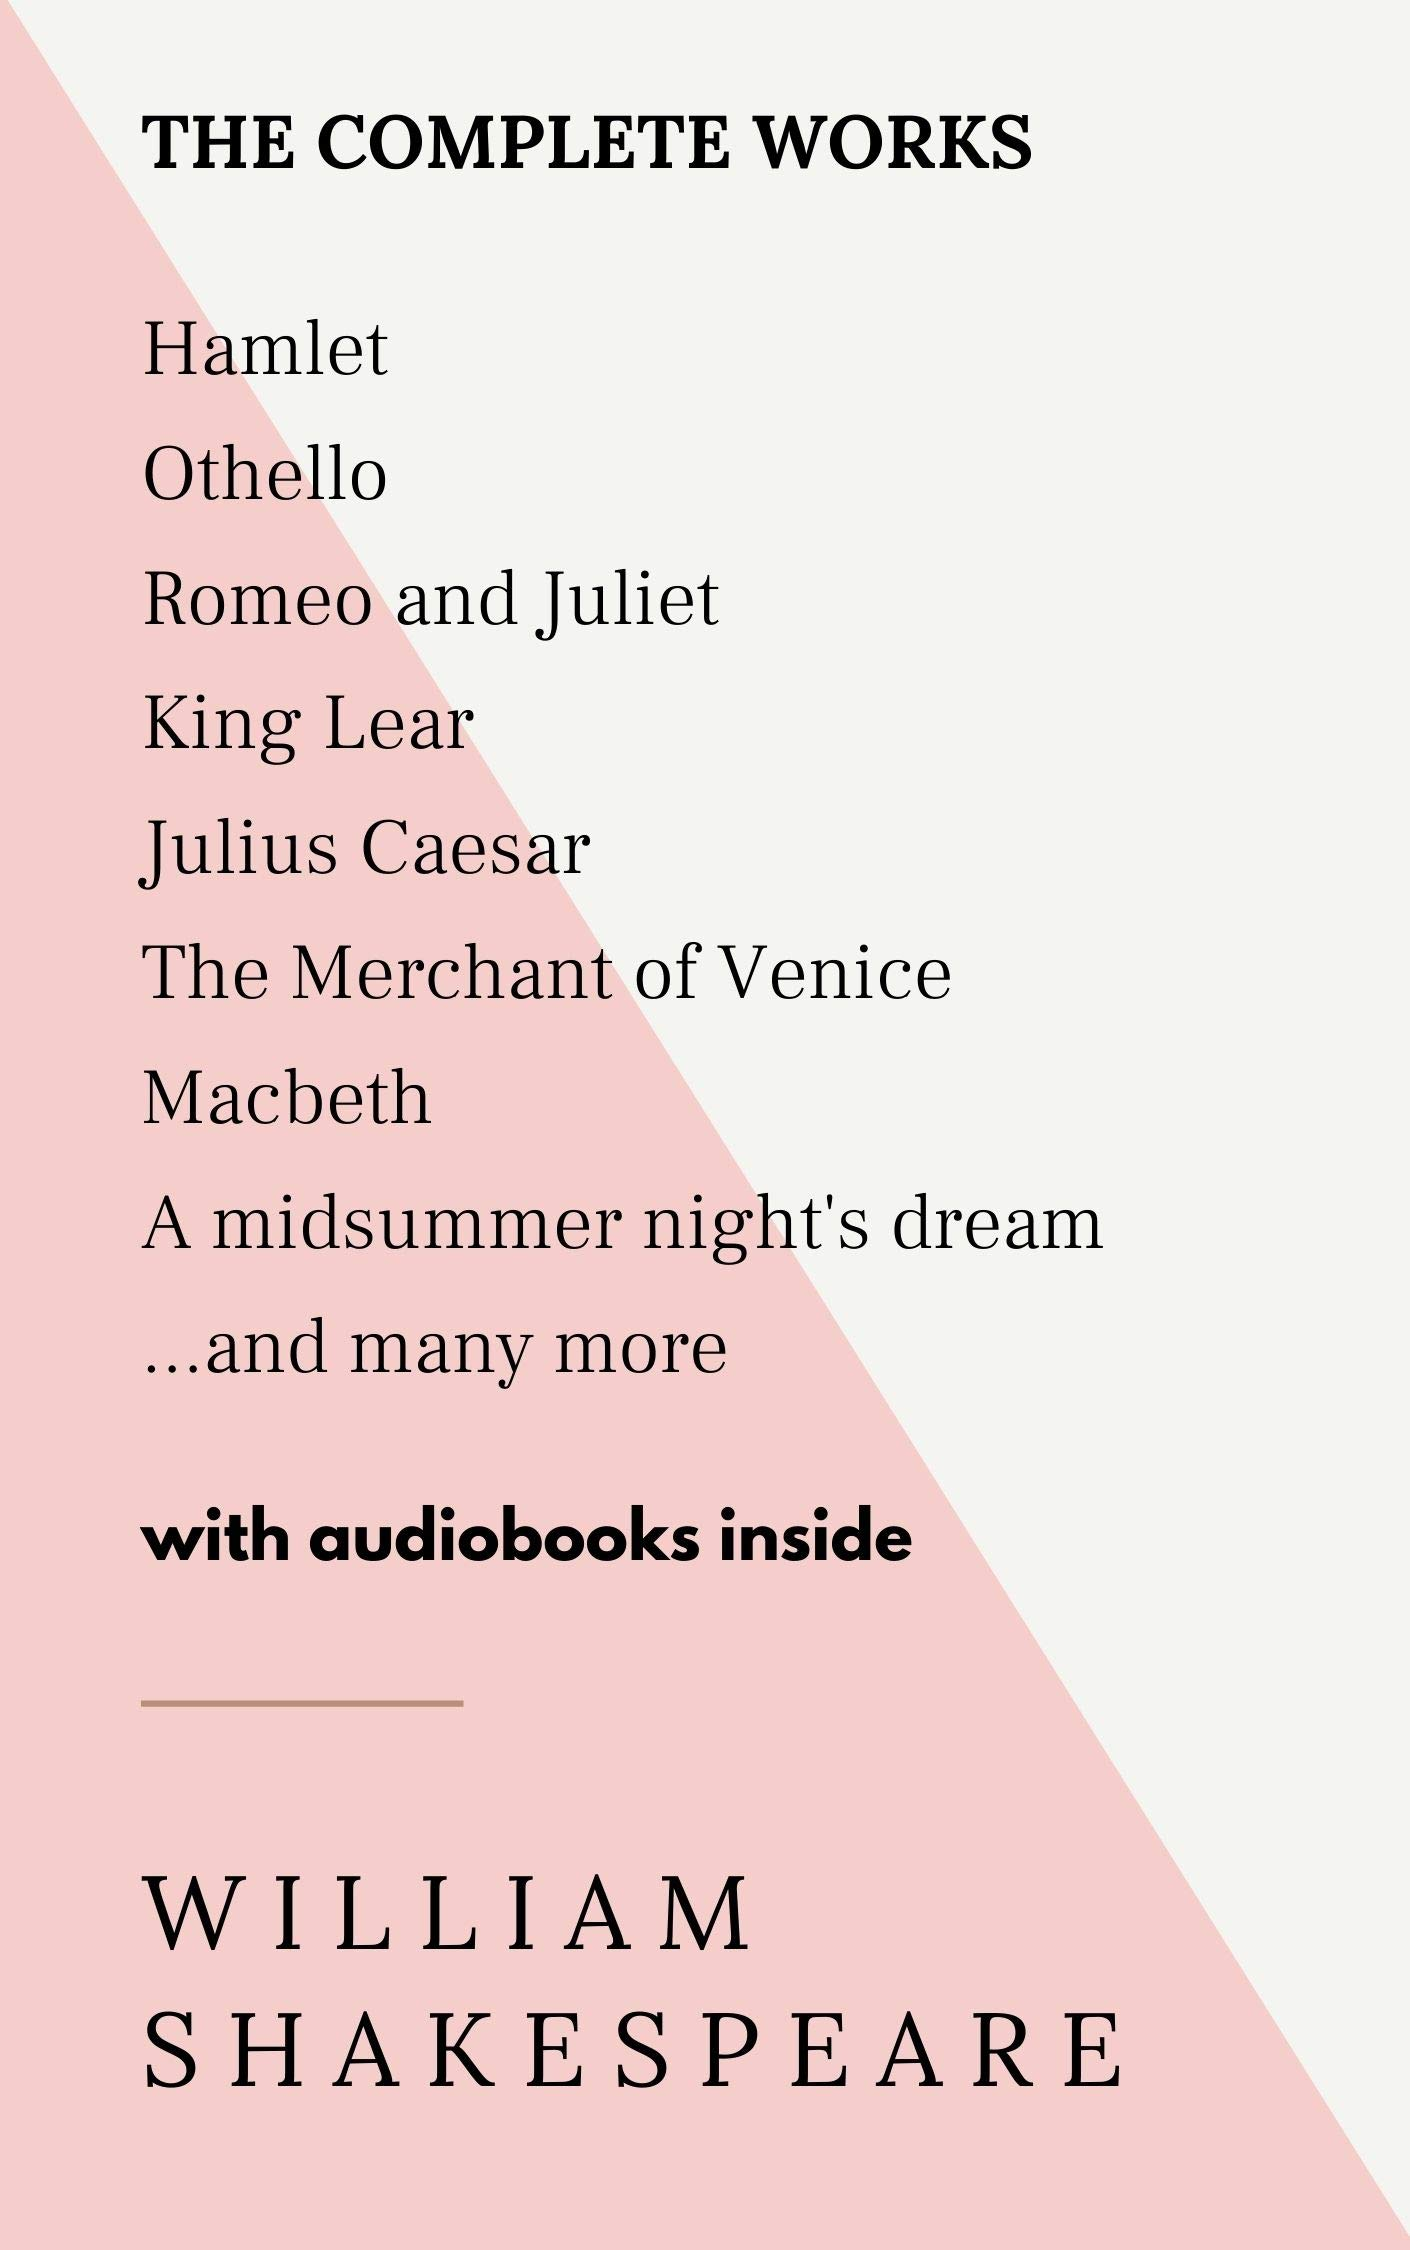 The Complete Works of William Shakespeare: Hamlet, Othello, Romeo and Juliet, King Lear, Julius Caesar, The Merchant of Venice, Macbeth, A Midsummer night's dream, and many more - WITH AUDIOBOOKS